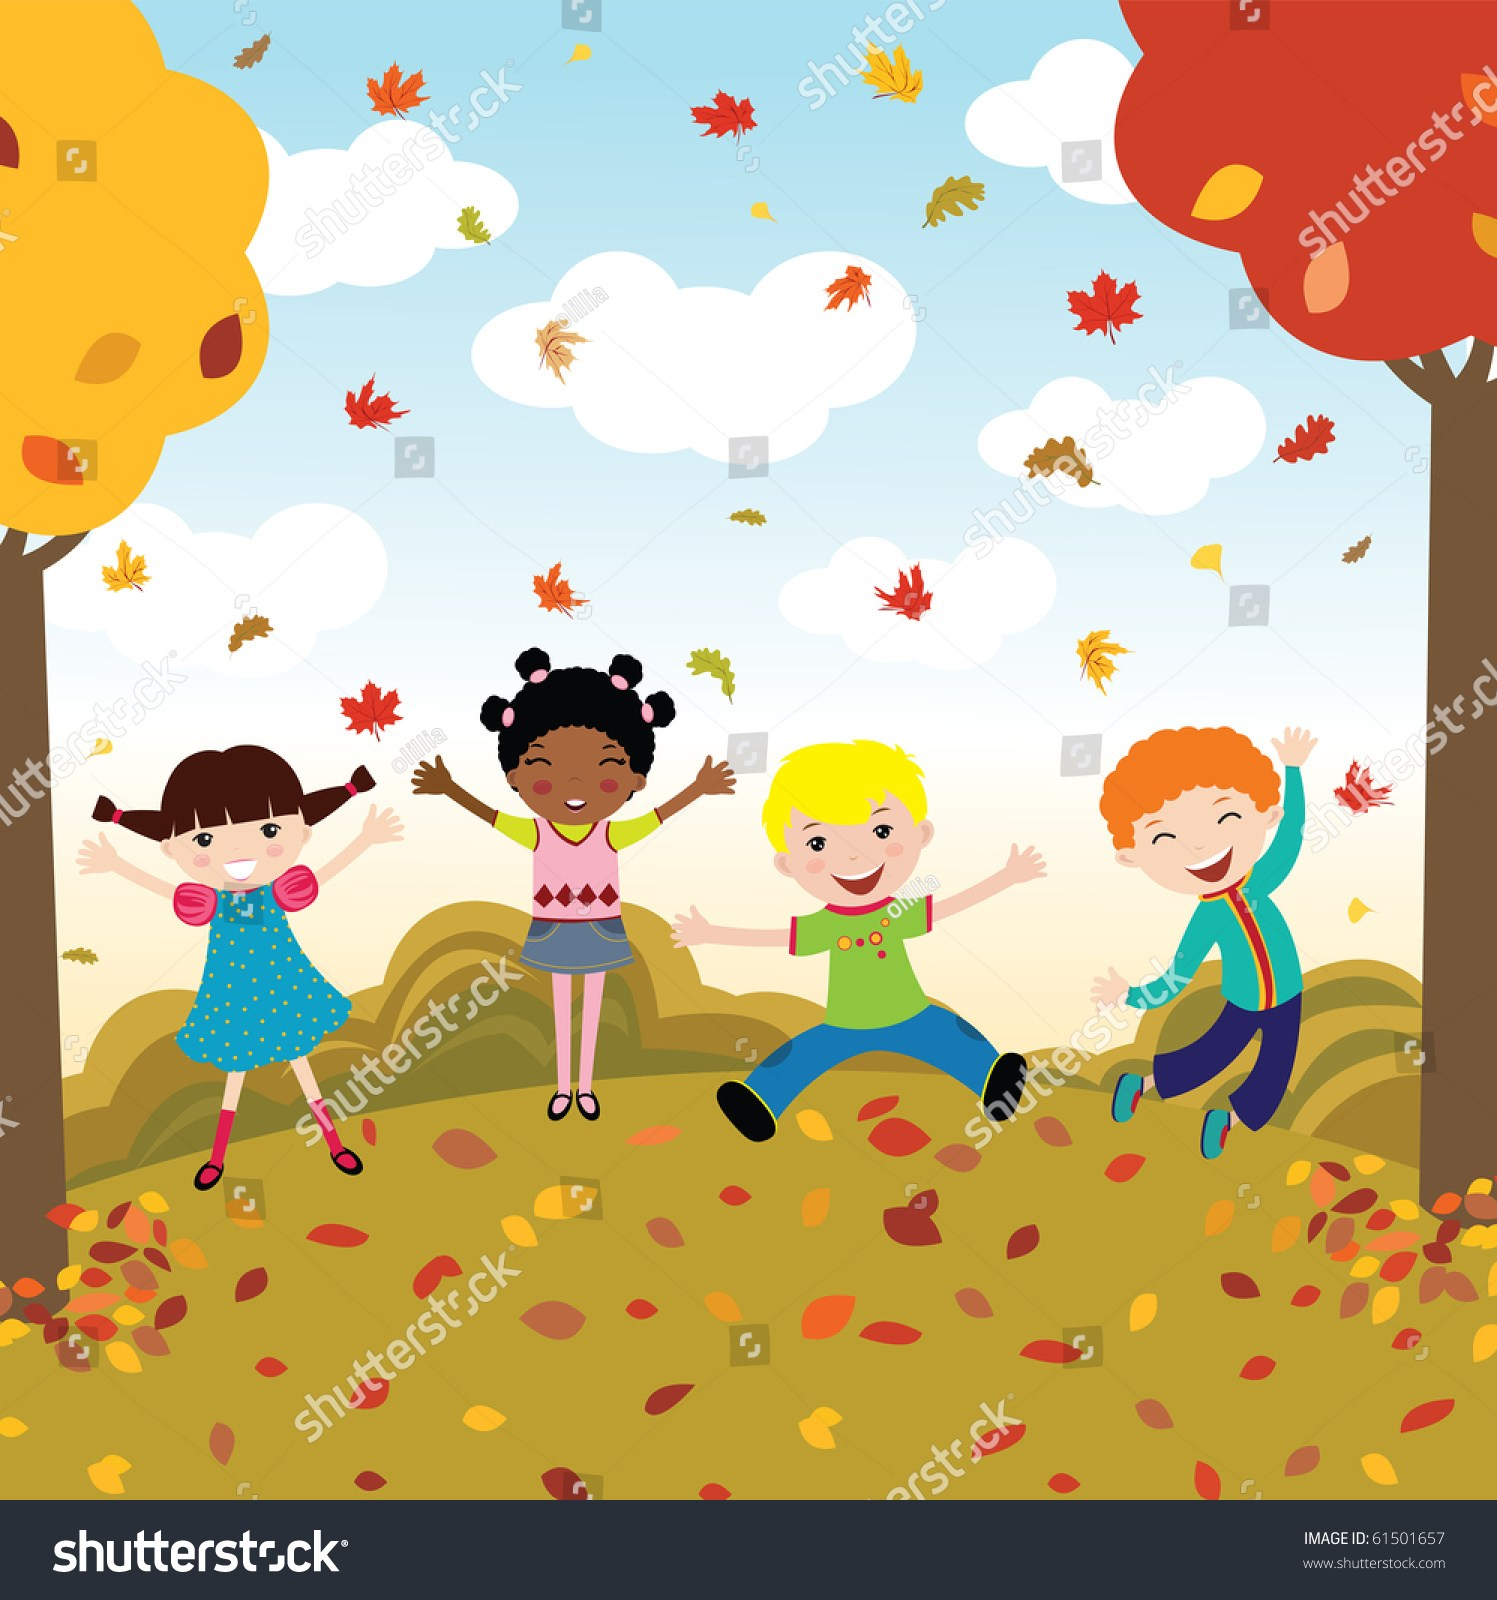 Fall clipart for kids 1 » Clipart Portal.